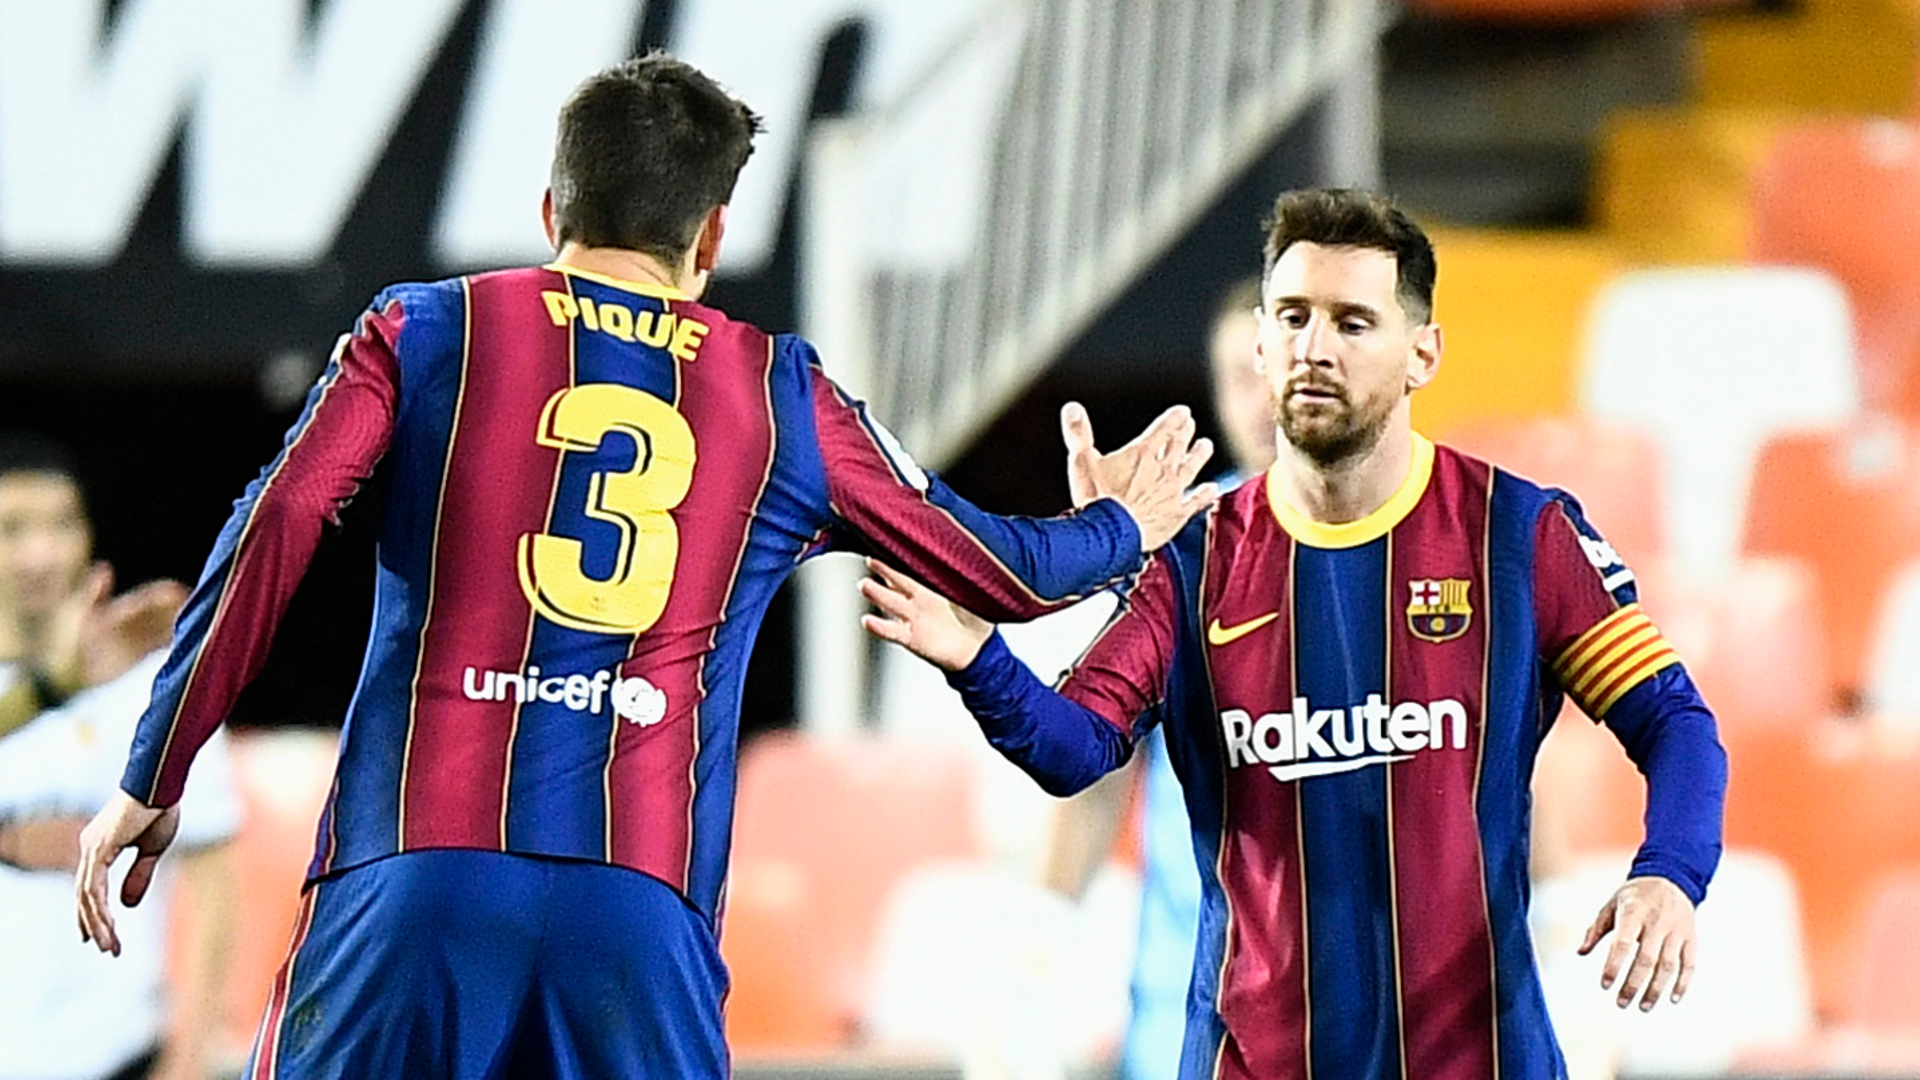 Pique braced for dramatic finale to LaLiga as Messi boosts Barcelona